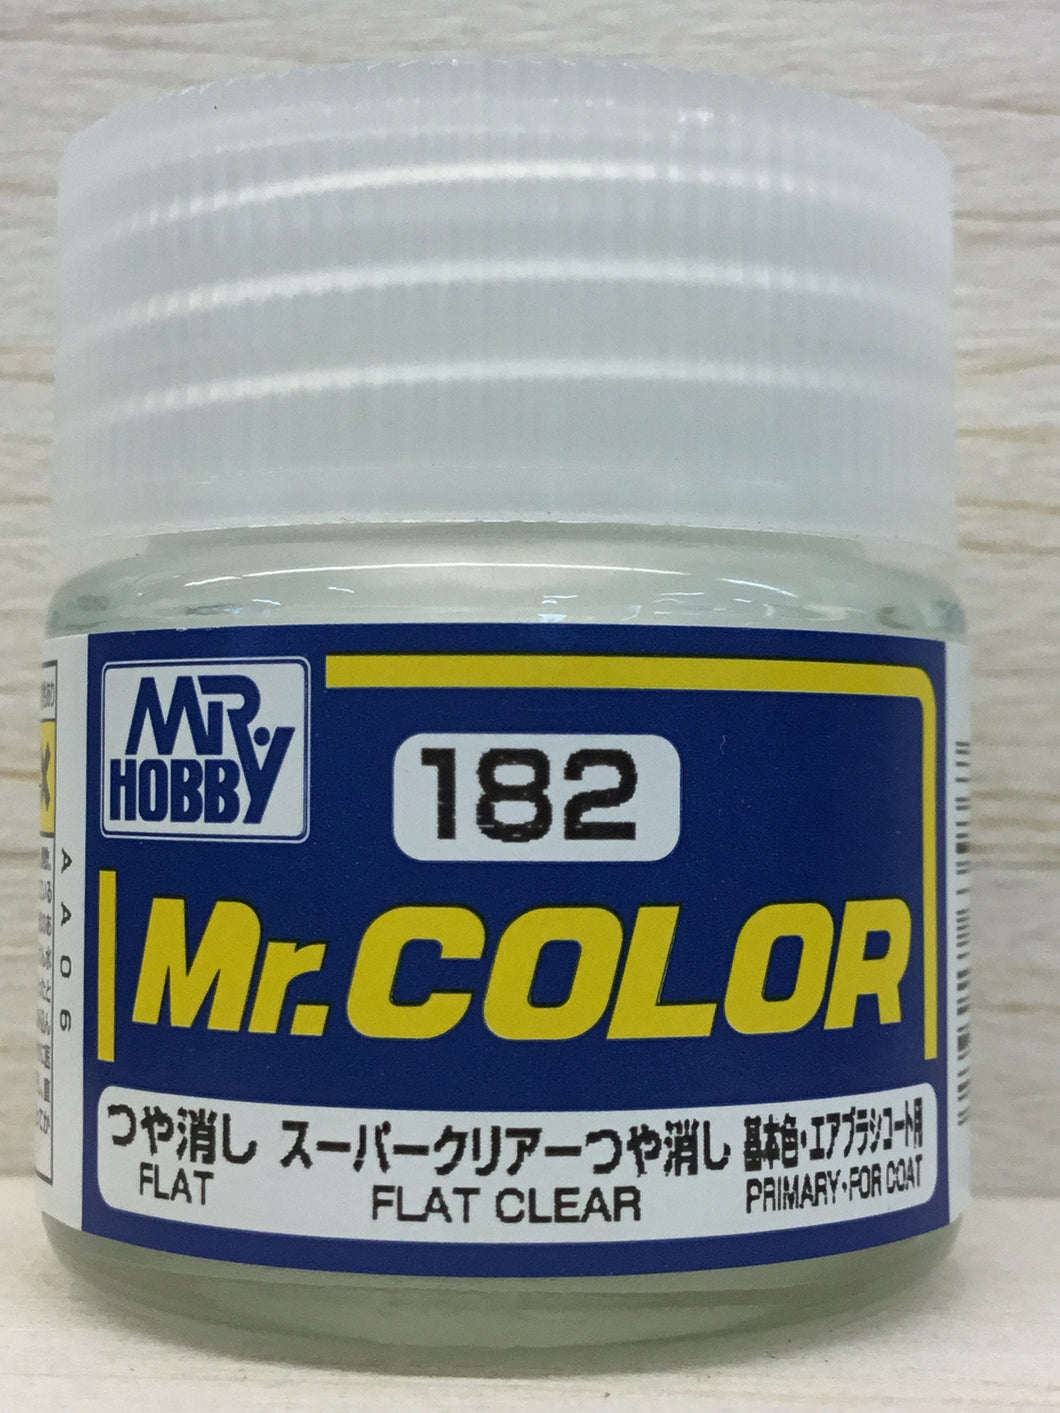 GUNZE MR COLOR C182 FLAT CLEAR